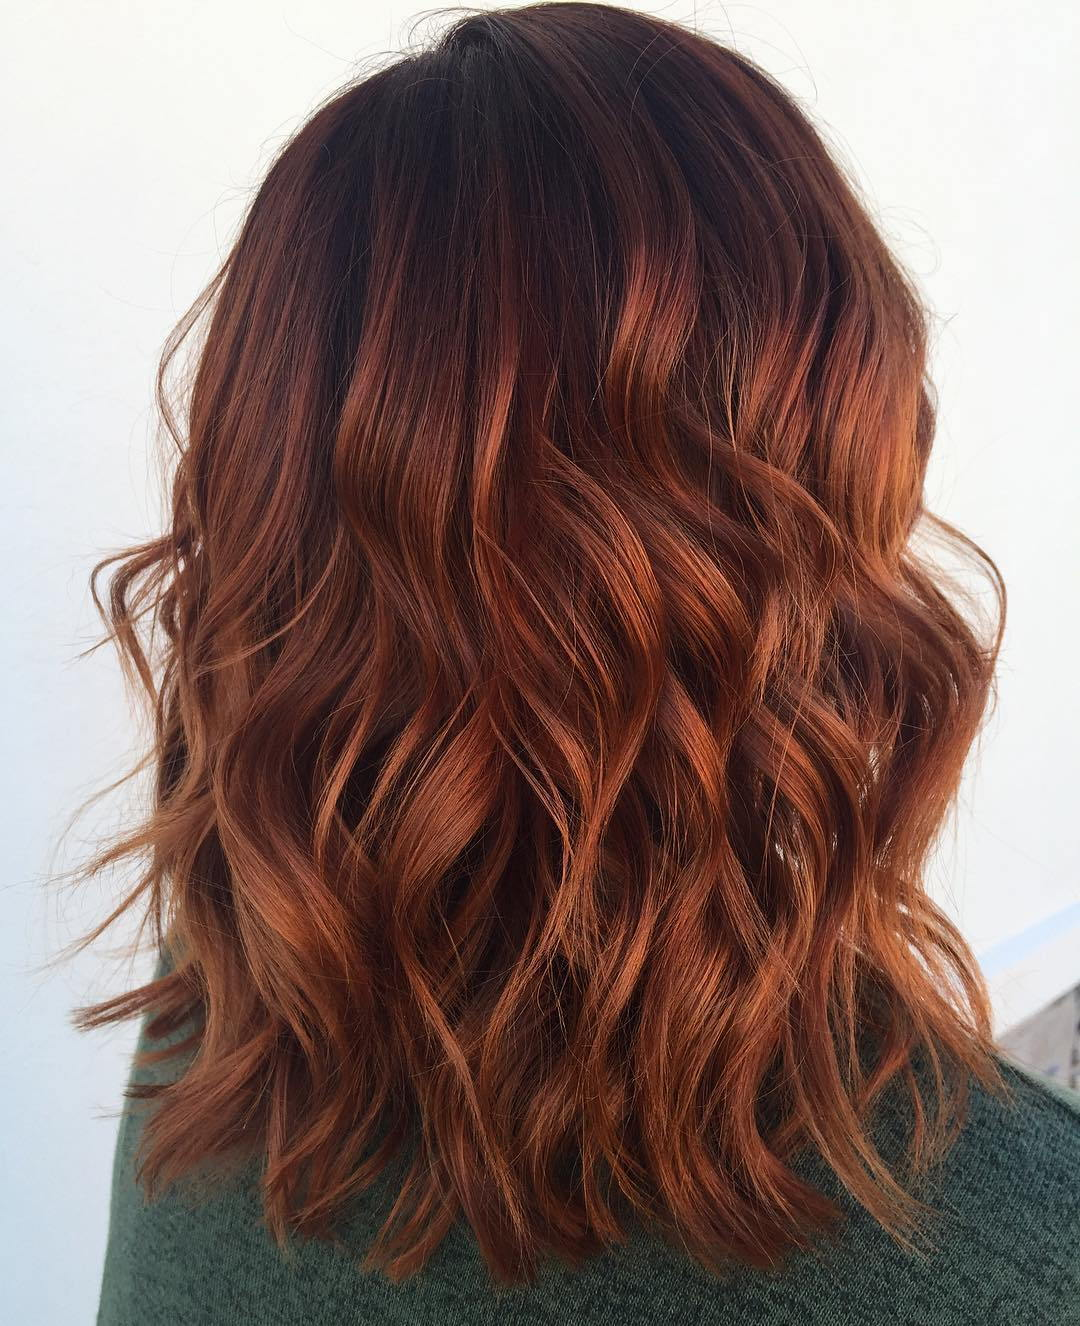 valovit Copper Lob